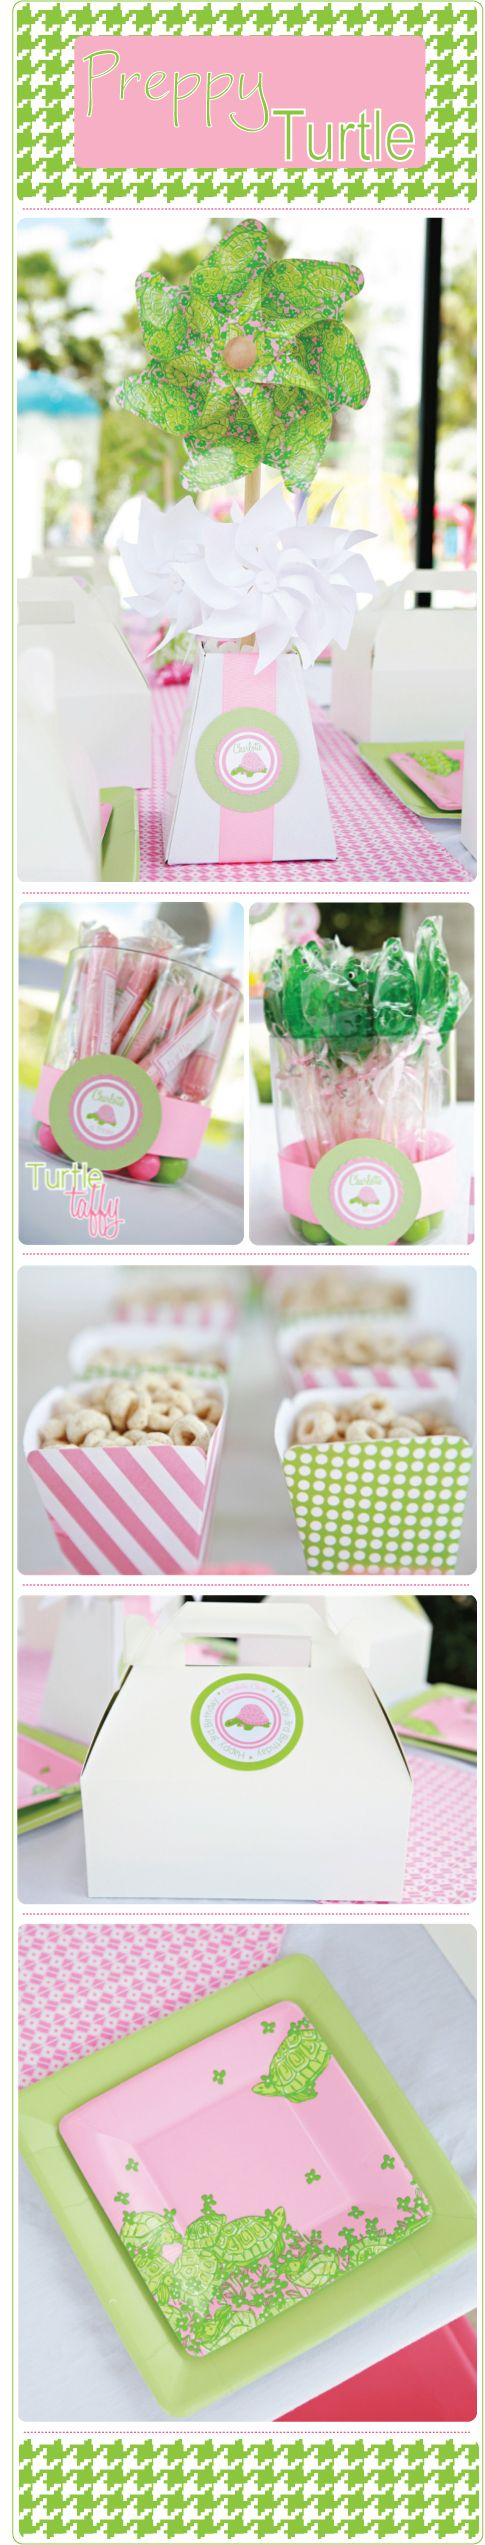 love the little packs of cheerios!  Perfect for a toddler bday party